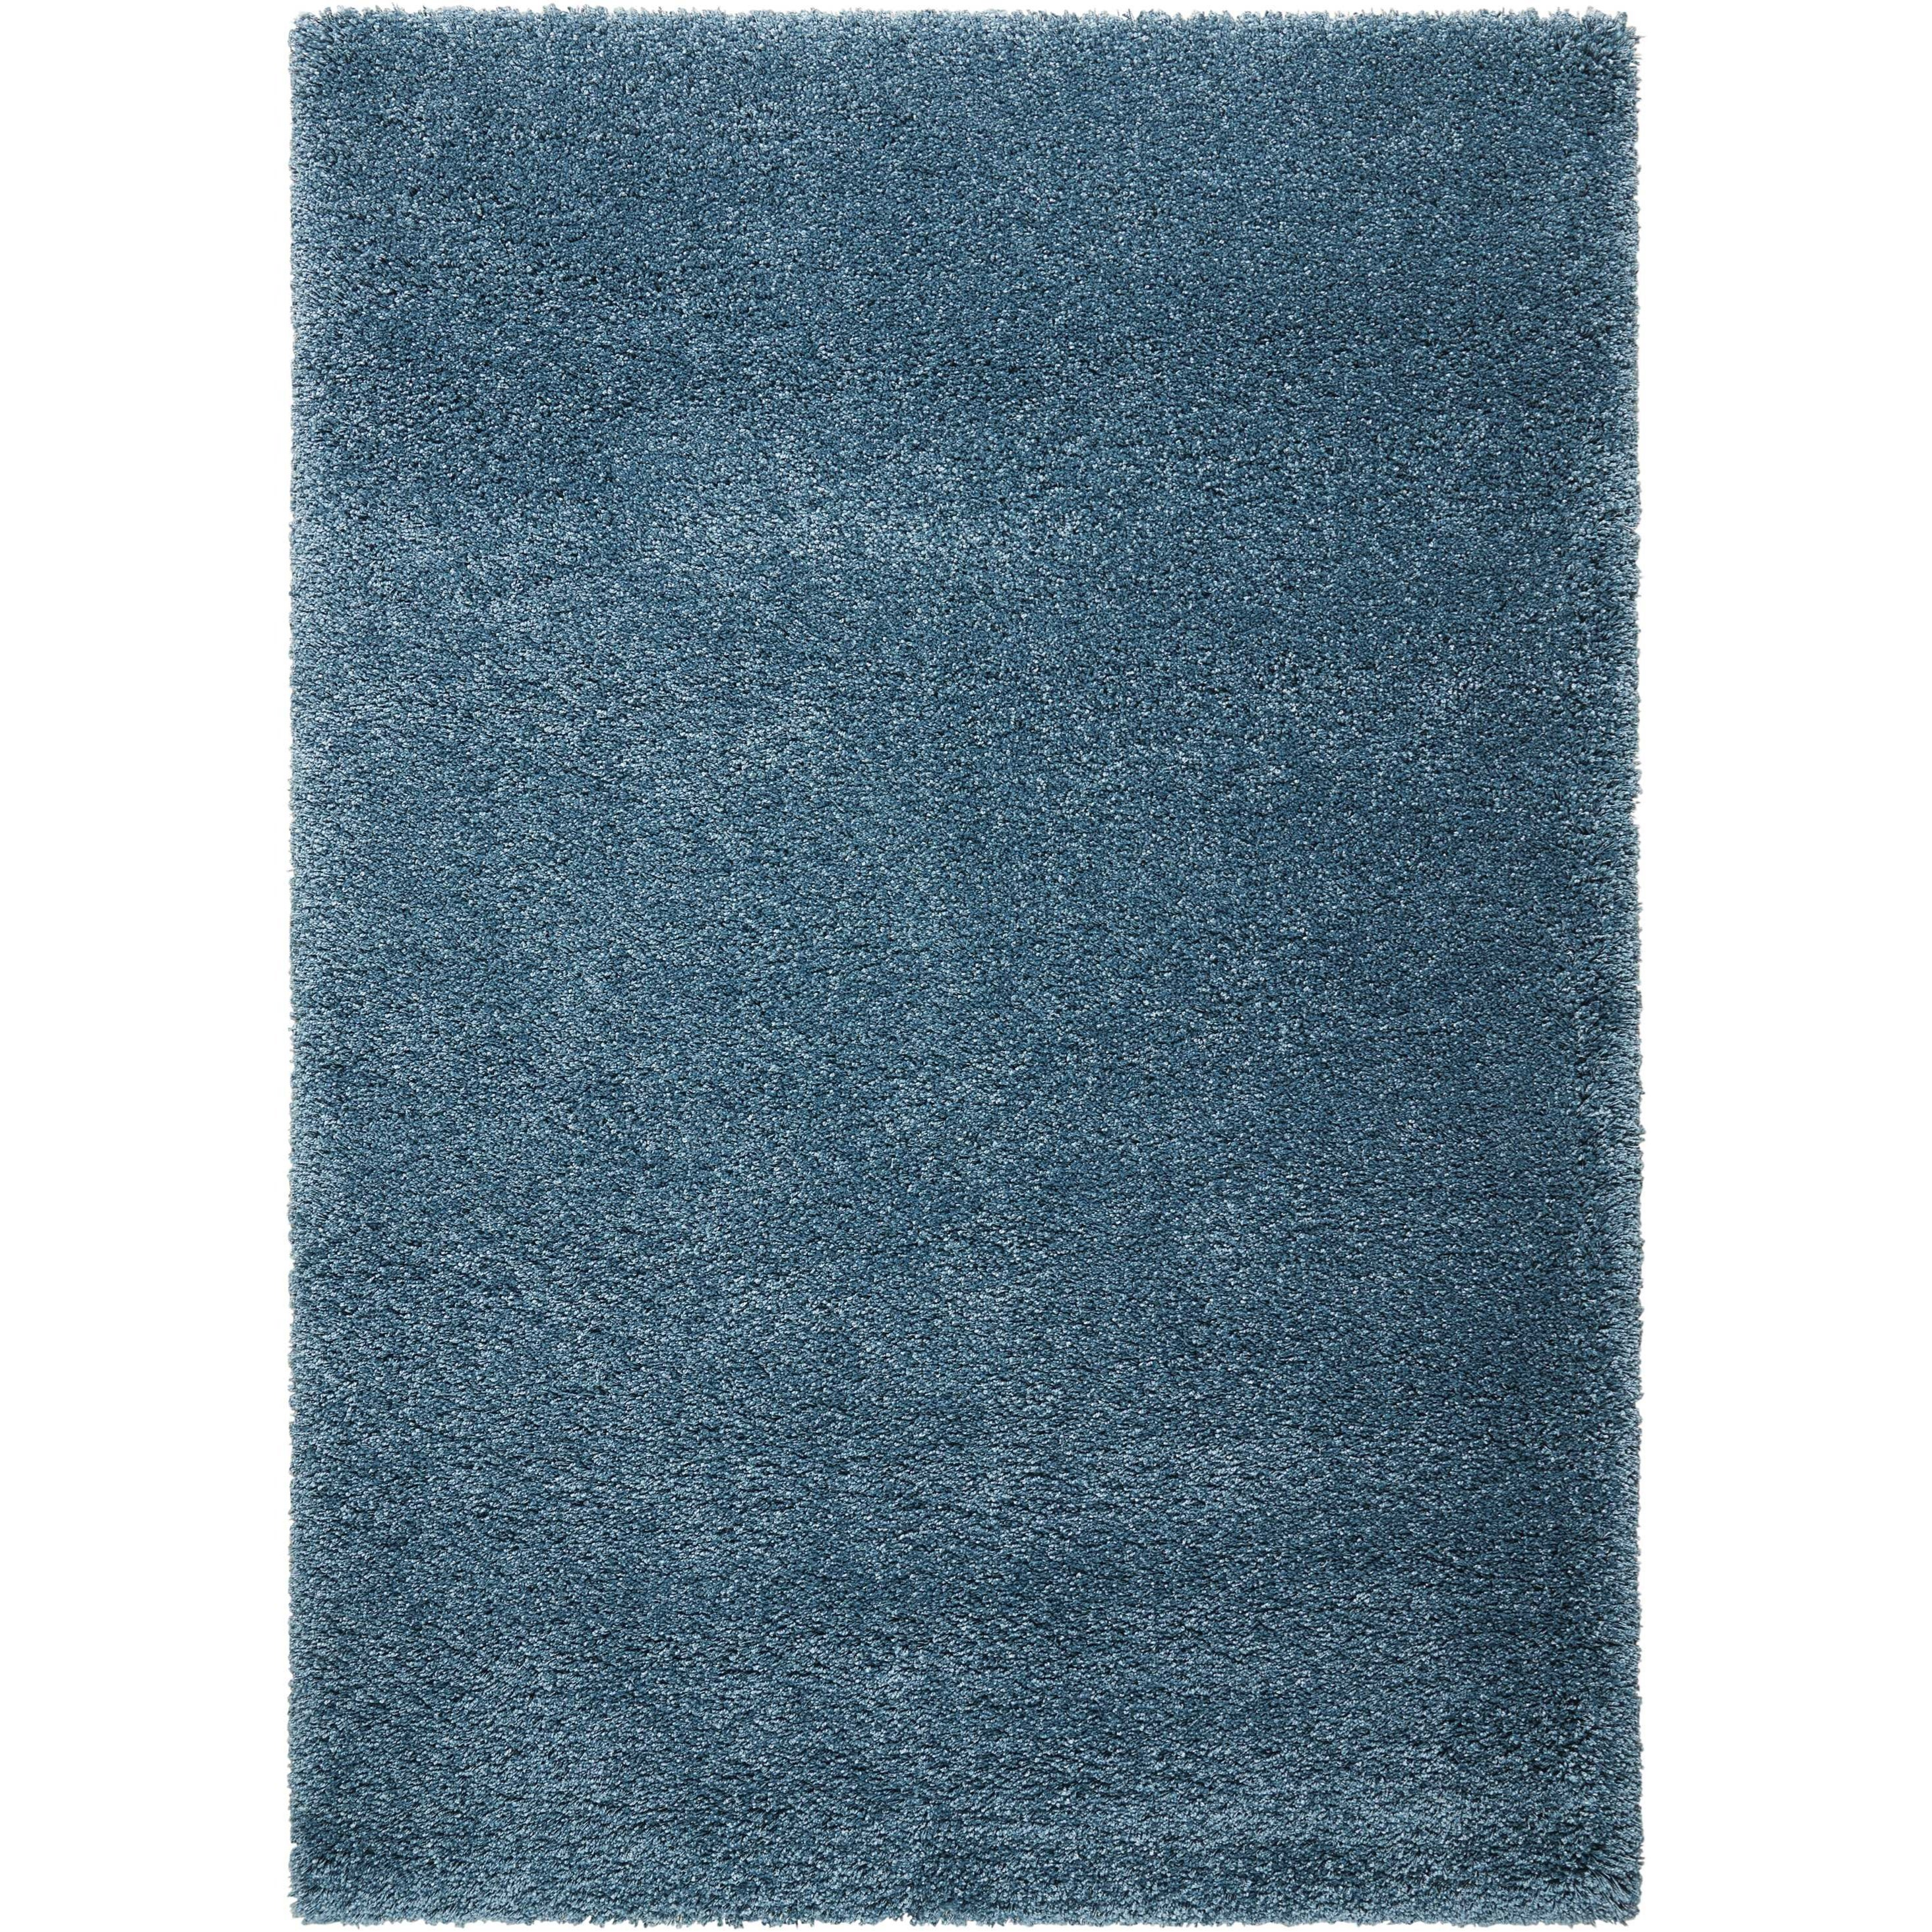 "Amore2 7'10"" X 10'10"" Slate Blue Rug by Nourison at Home Collections Furniture"